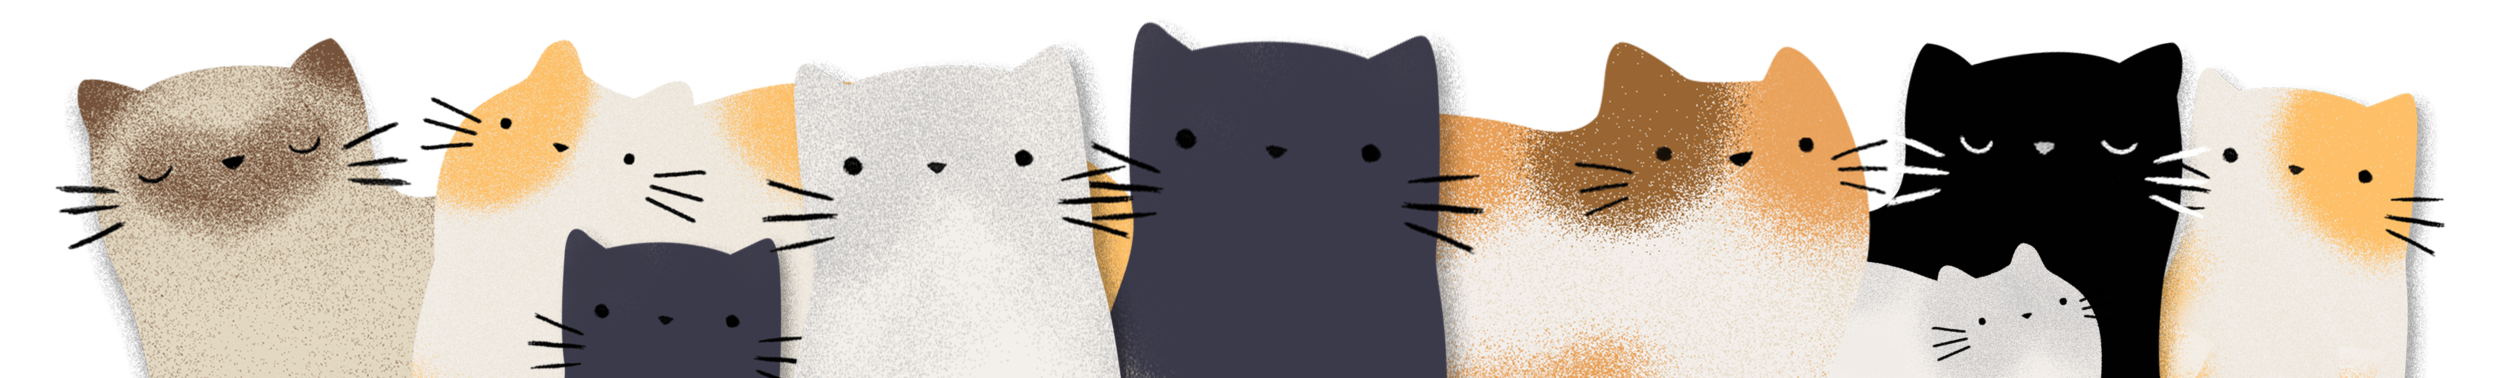 Footer banner with lots of illustrated cats in a minimalist style.